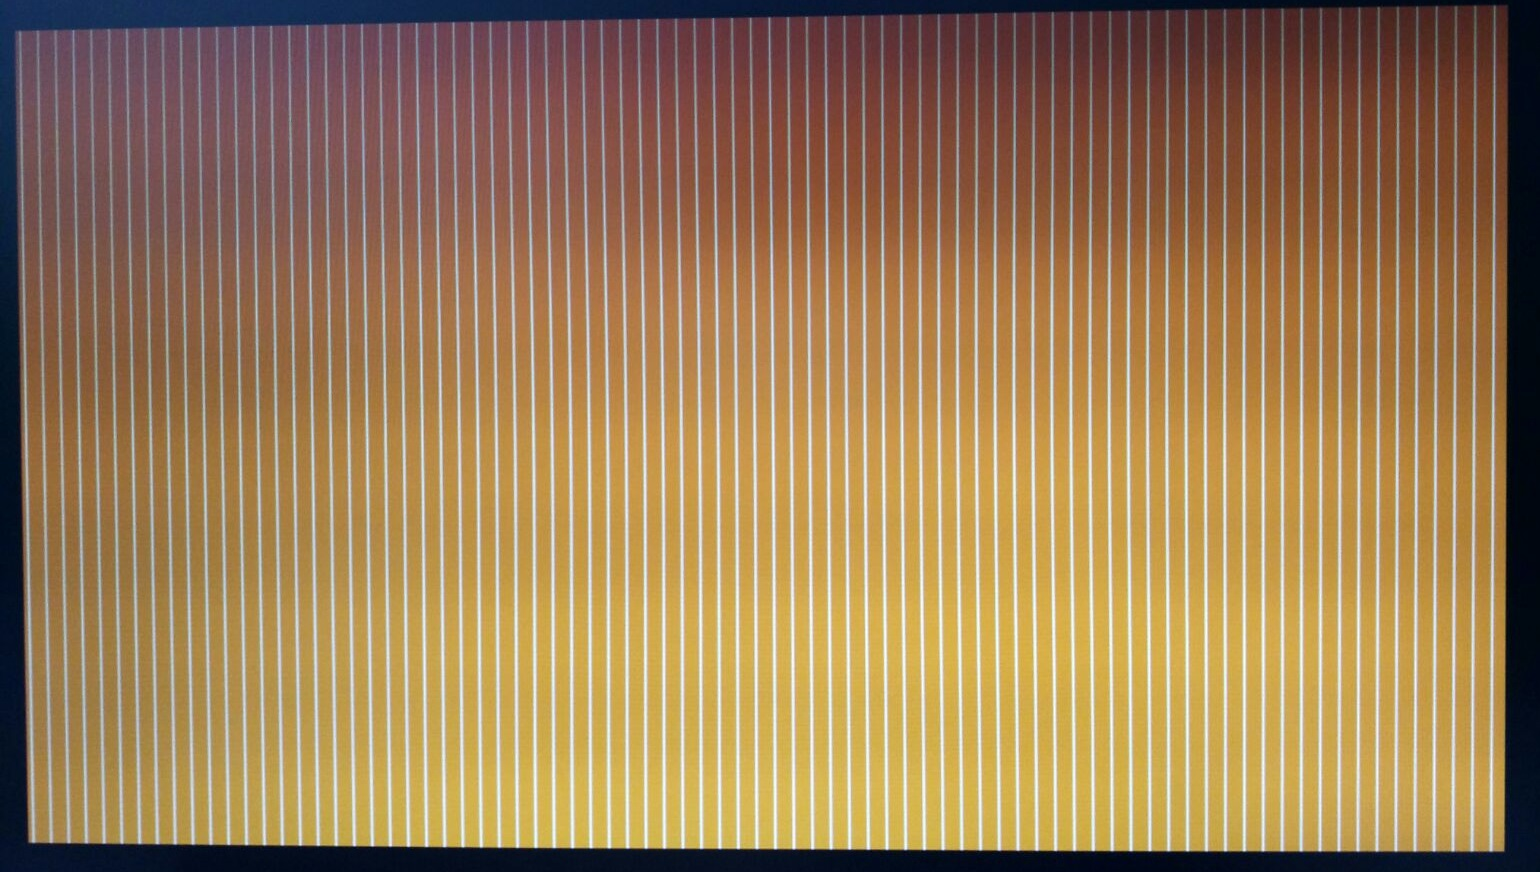 Orange screen with vertical white lines on startup KGNmd.jpg